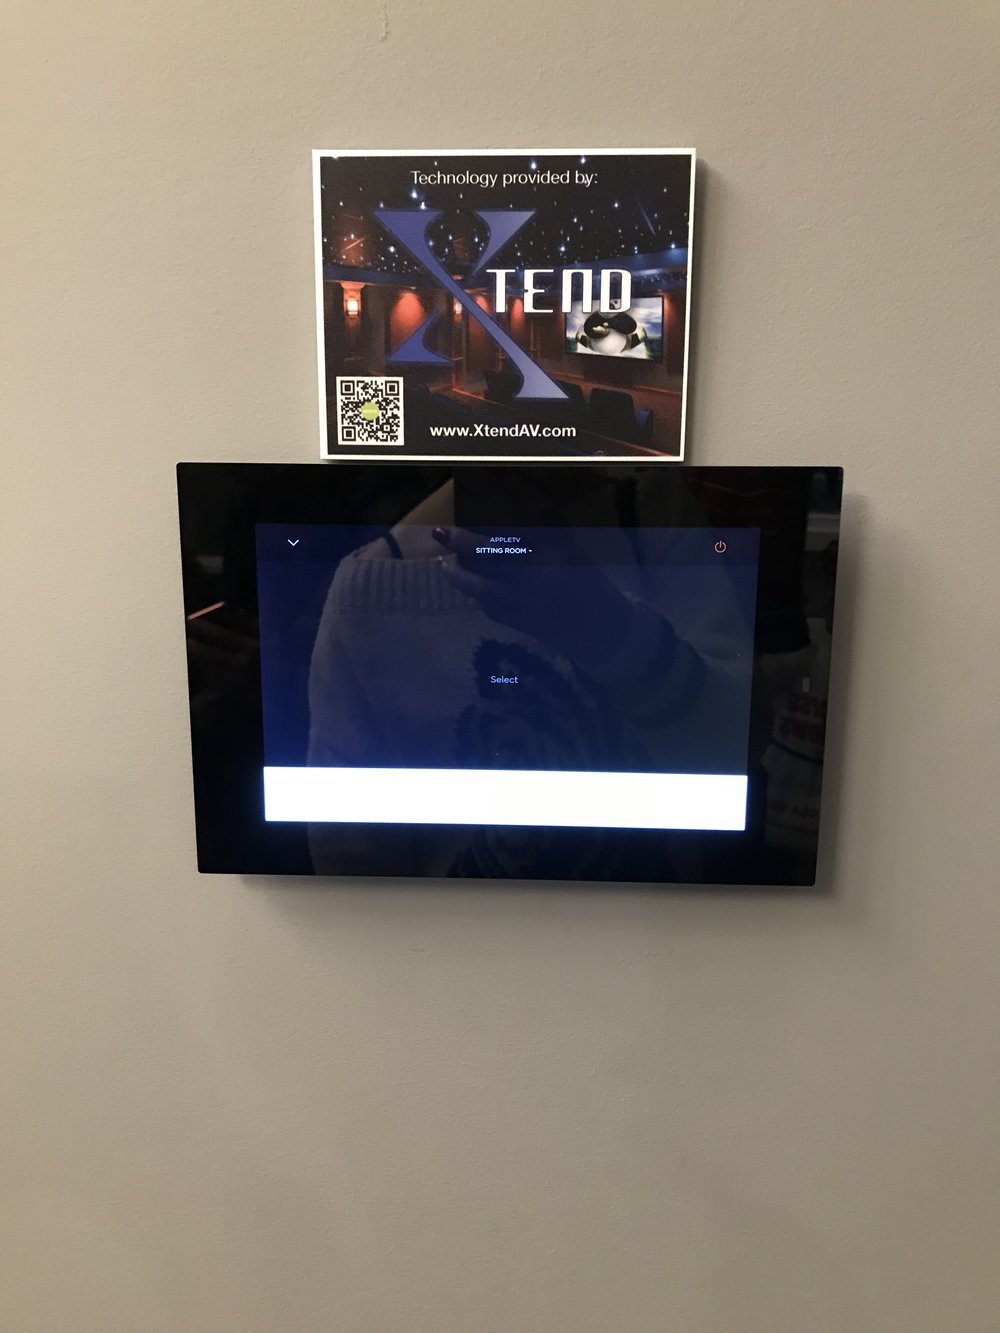 Control everything through these touch screen panels